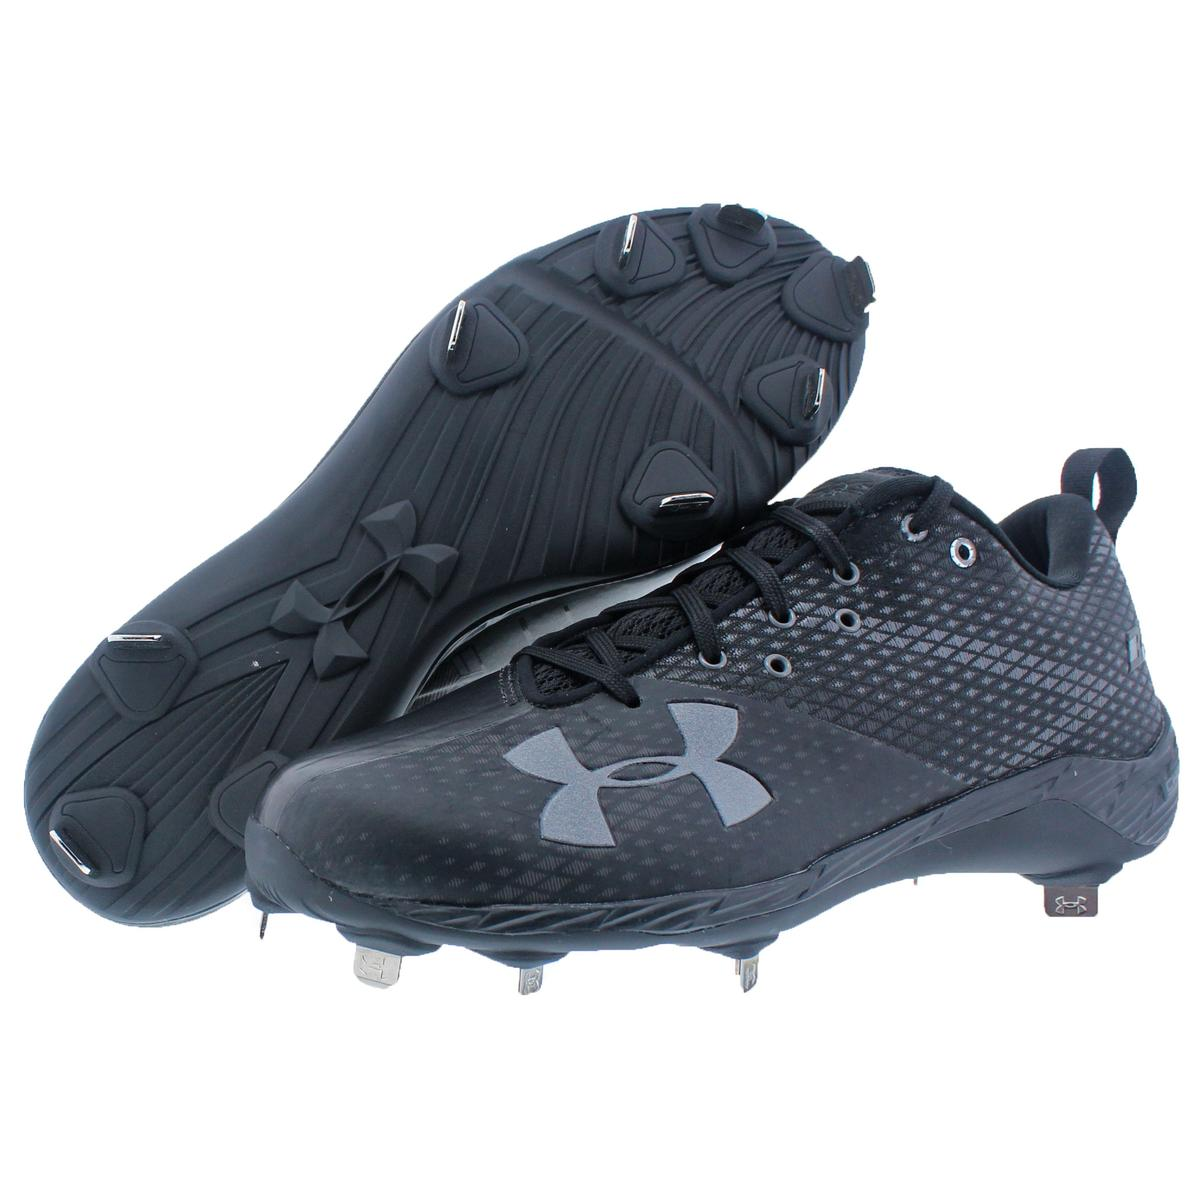 49cd1e1d9603 Under Armour Bryce Harper One Low ST Faux Leather Charged Baseball ...